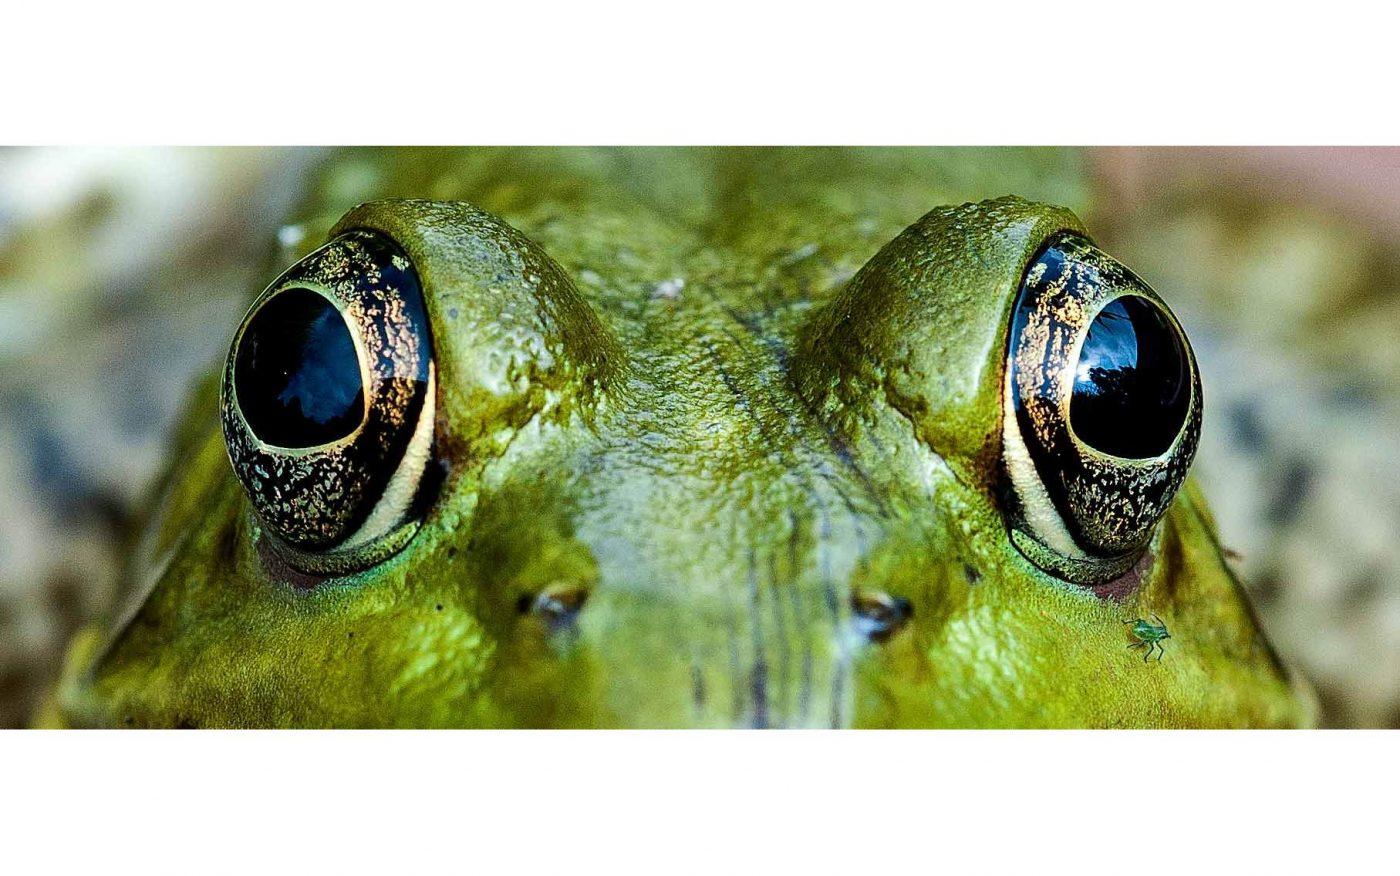 Macro of photo of a bullfrog's face and eyes